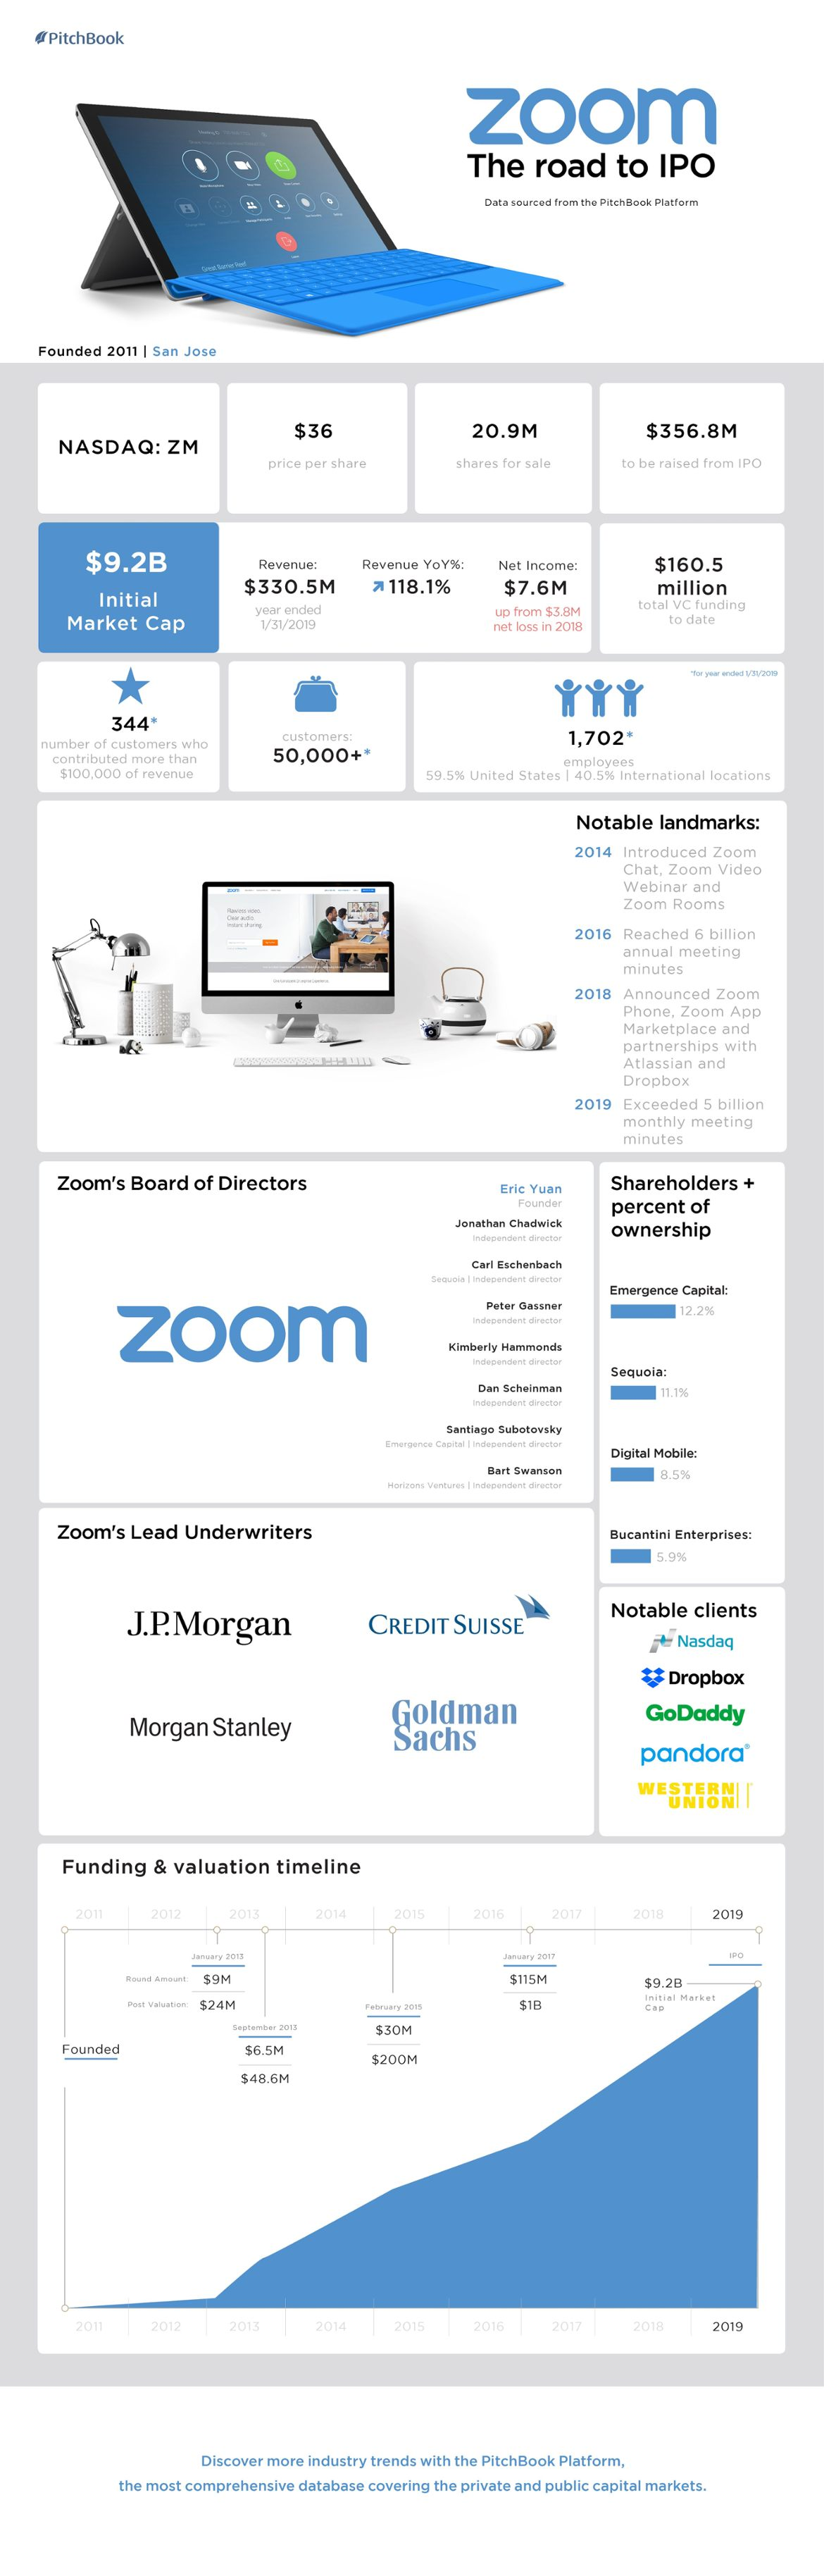 Zoom's valuation jumps 9x in overlooked IPO [datagraphic]